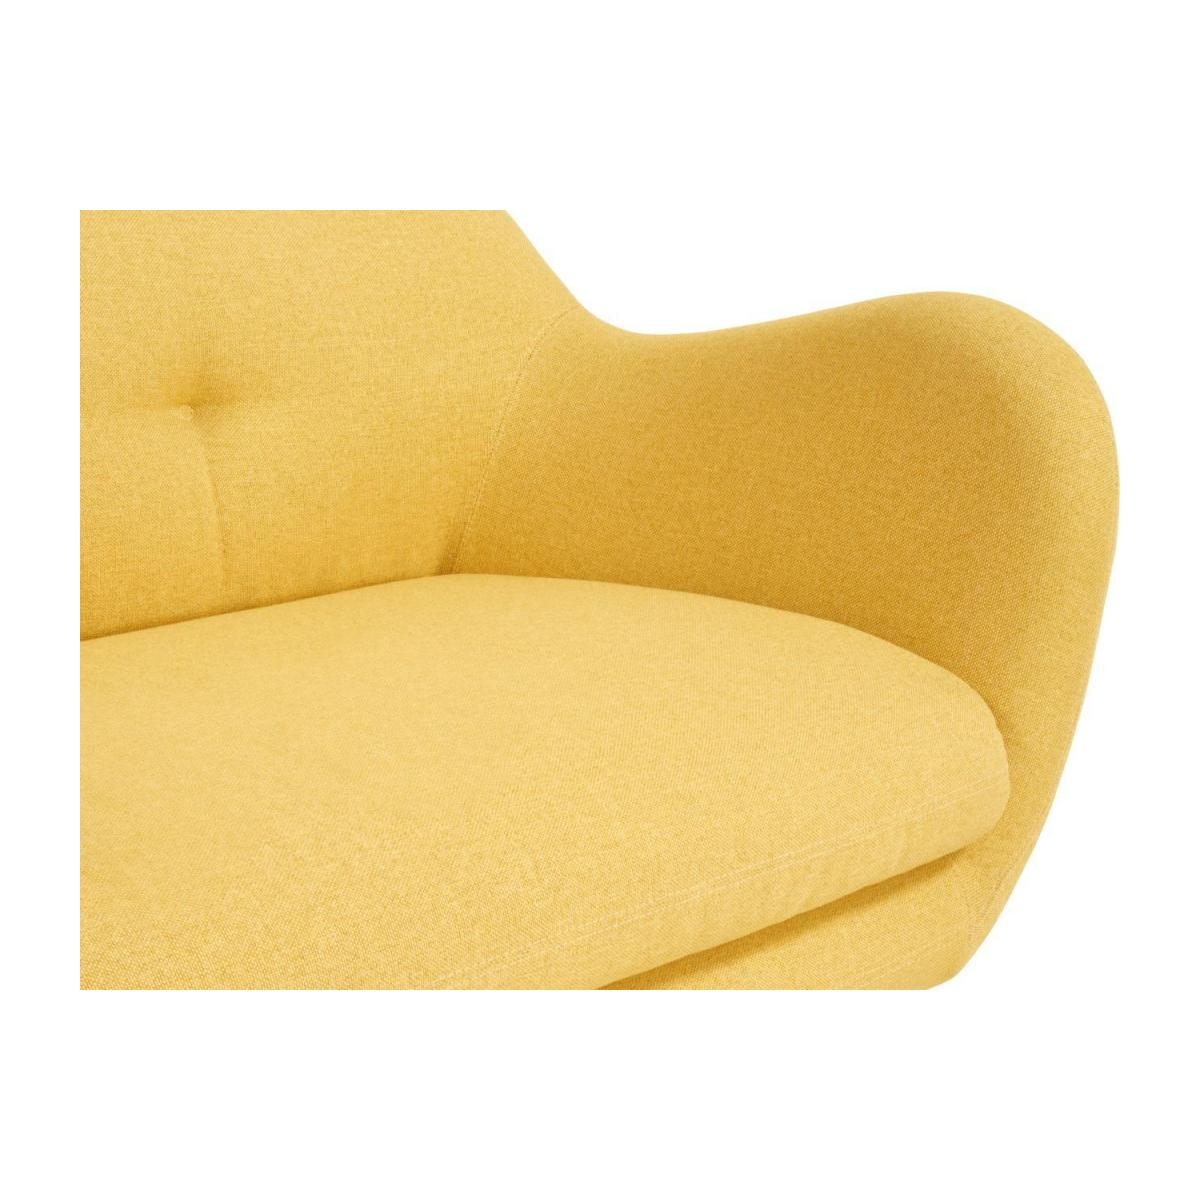 3-seat sofa made of fabric, yellow n°7